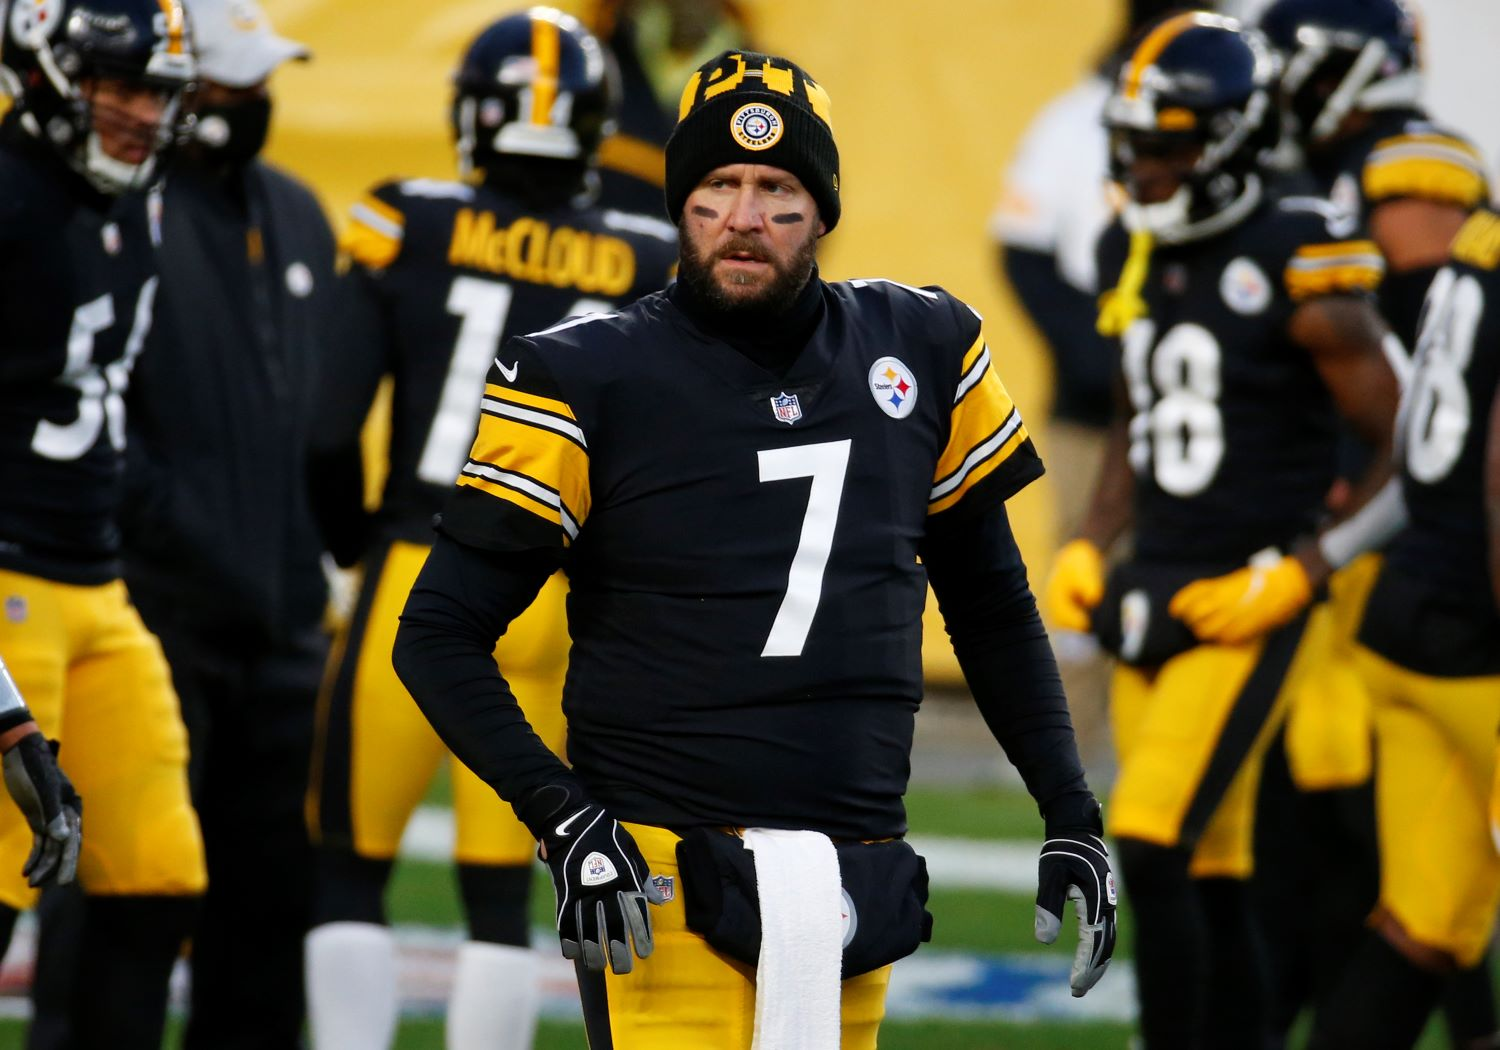 Ben Roethlisberger wants to play in 2021, but the Pittsburgh Steelers have to figure out what to do about his huge $41 million cap hit.